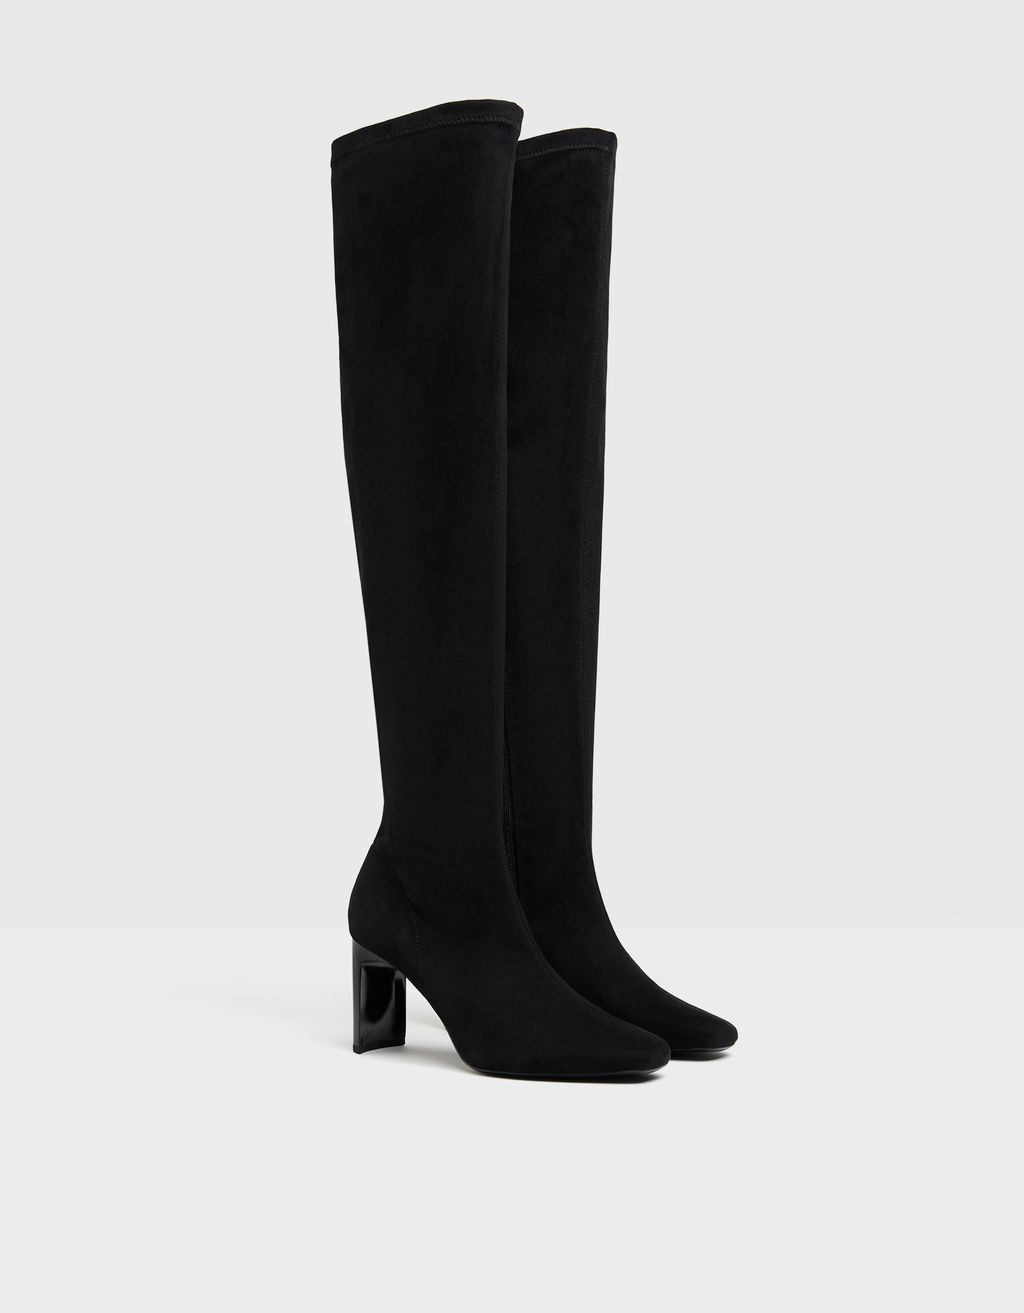 Fitted over-the-knee high heel boots